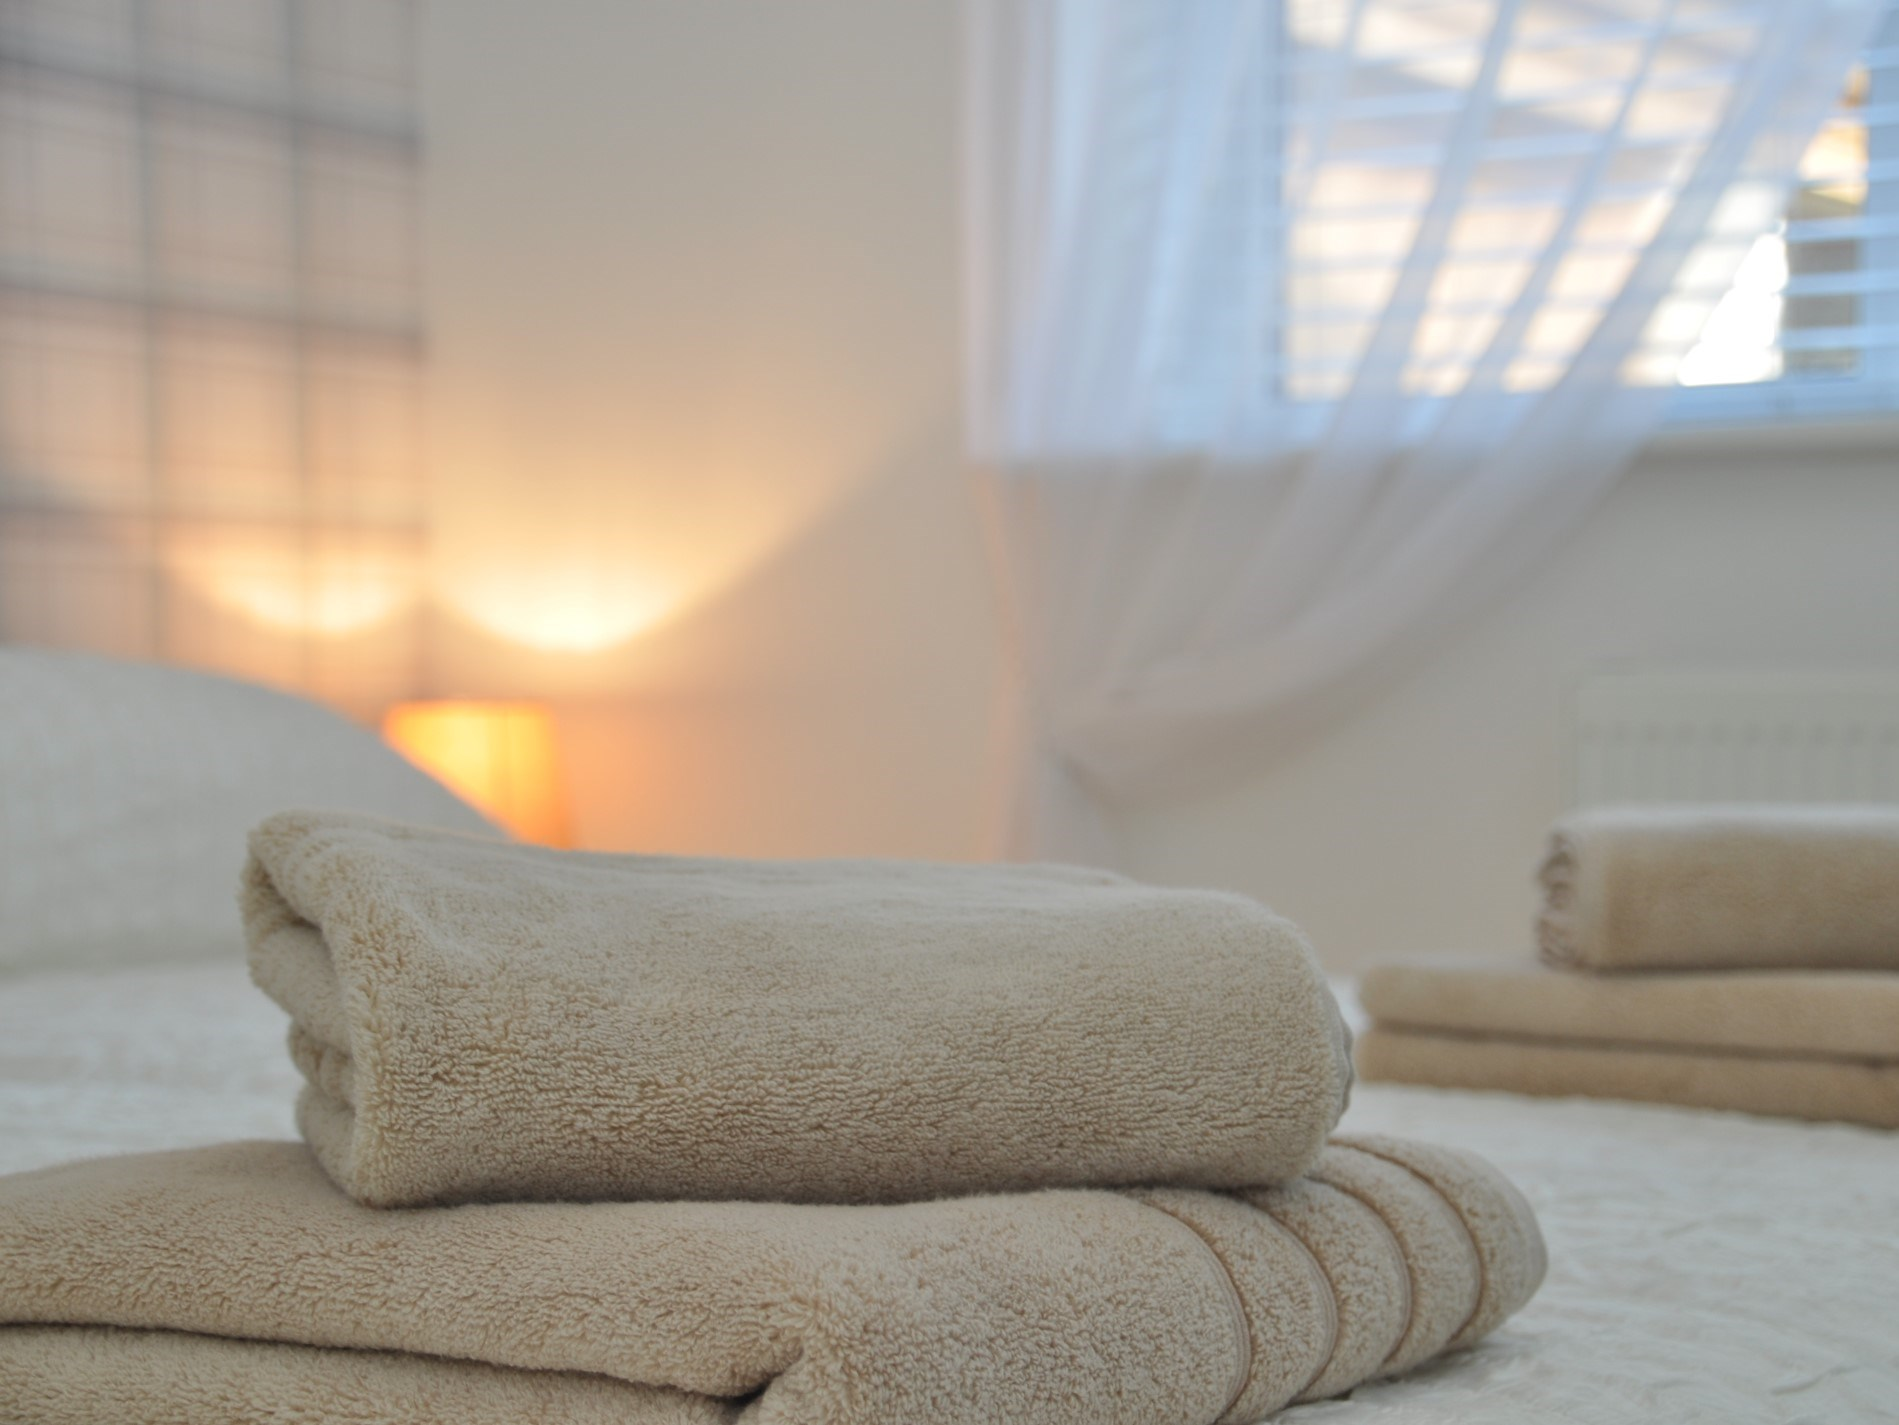 Further enhanced with luxurious soft towels